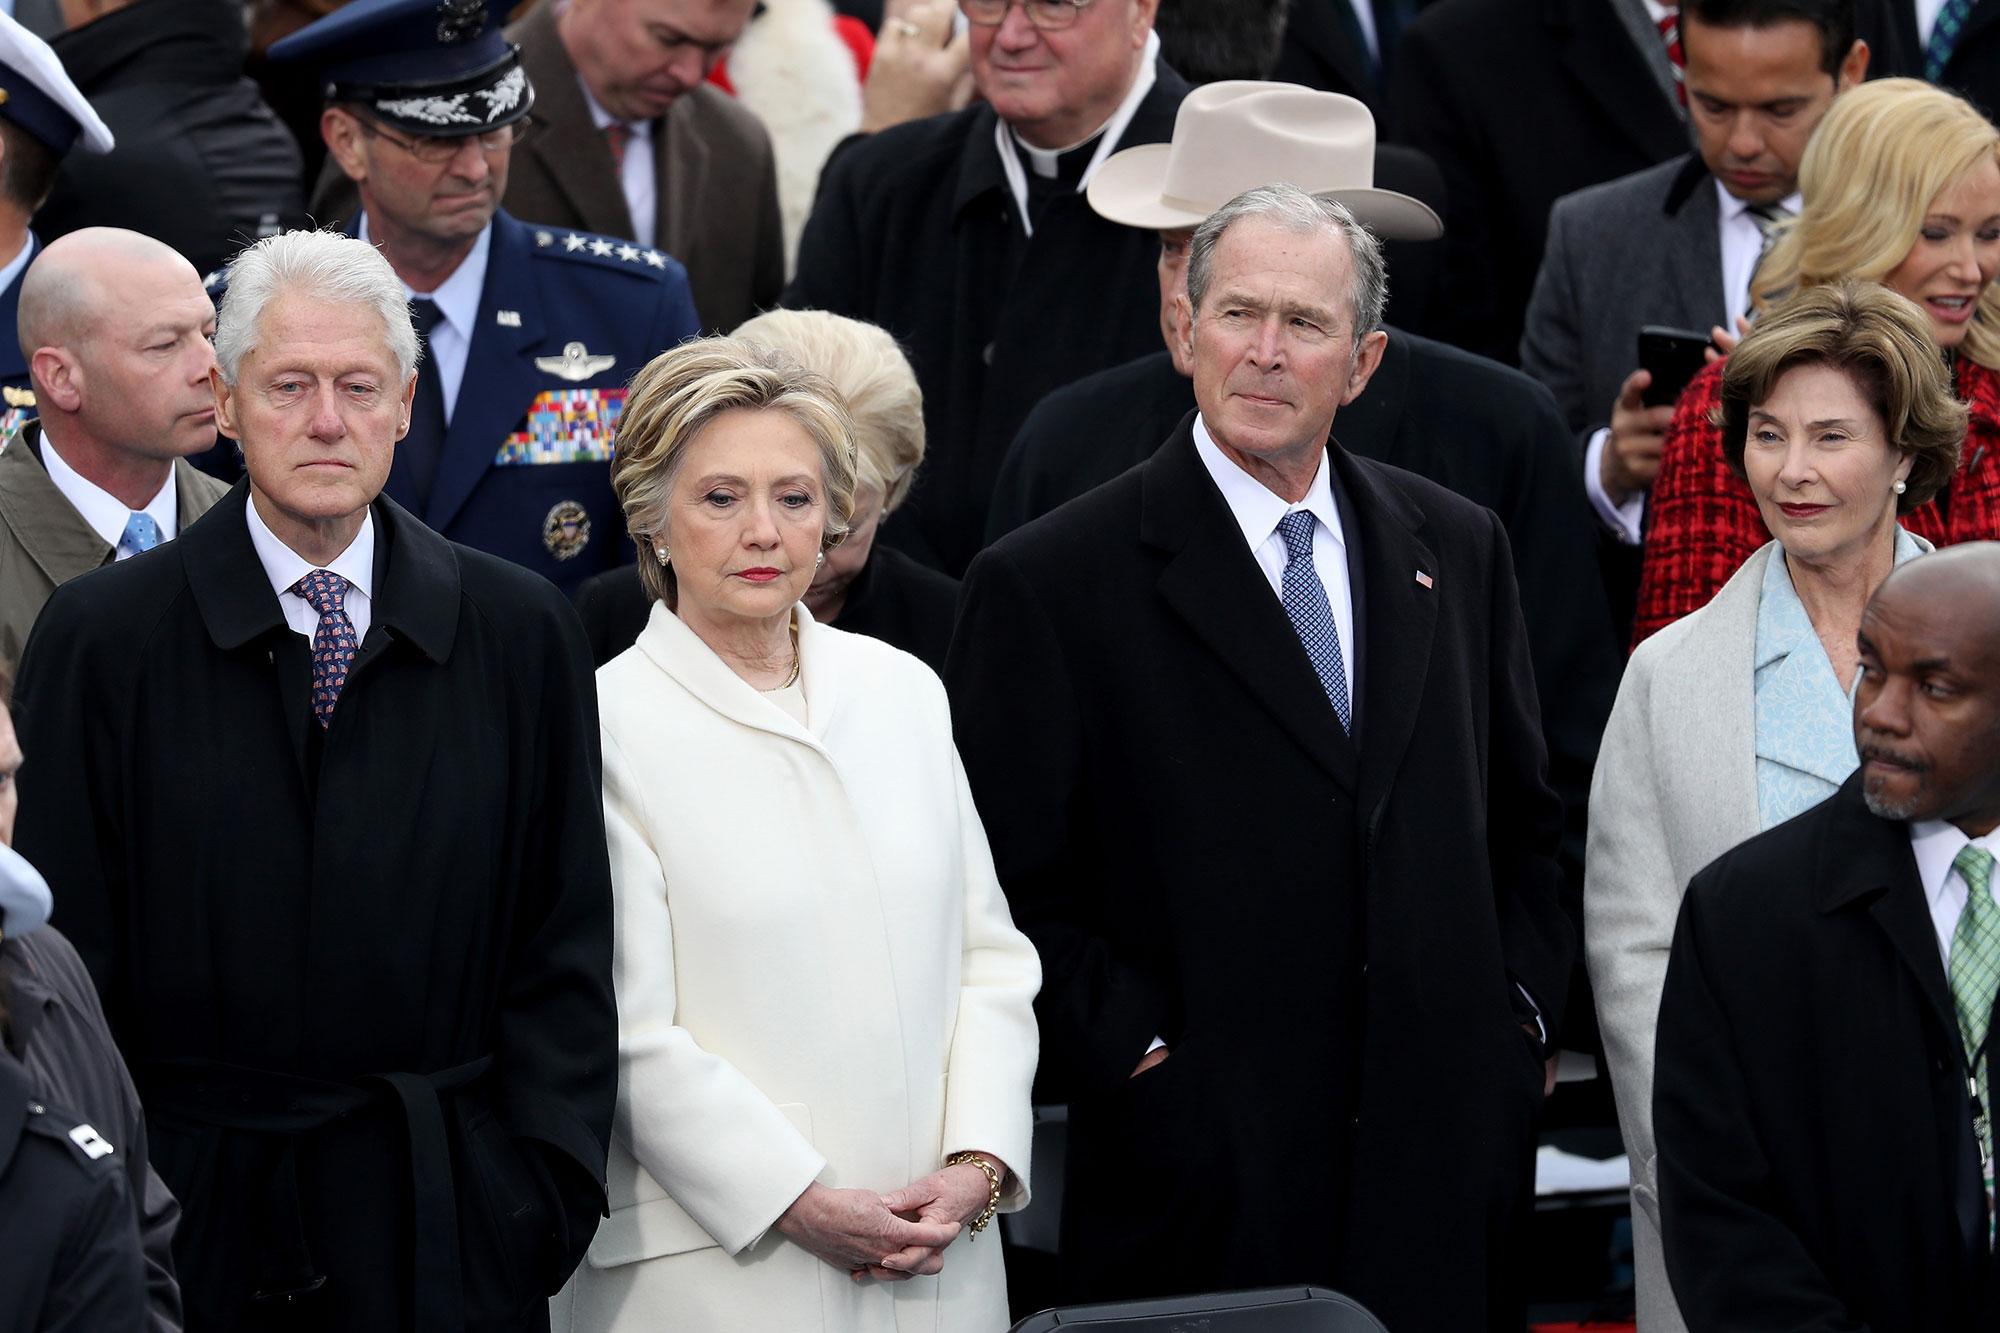 WASHINGTON, DC - JANUARY 20: Former President Bill Clinton (L), former Democratic presidential nominee Hillary Clinton, former President George W. Bush and Laura Bush stand on the West Front of the U.S. Capitol on January 20, 2017 in Washington, DC. In today's inauguration ceremony Donald J. Trump becomes the 45th president of the United States. (Photo by Joe Raedle/Getty Images)